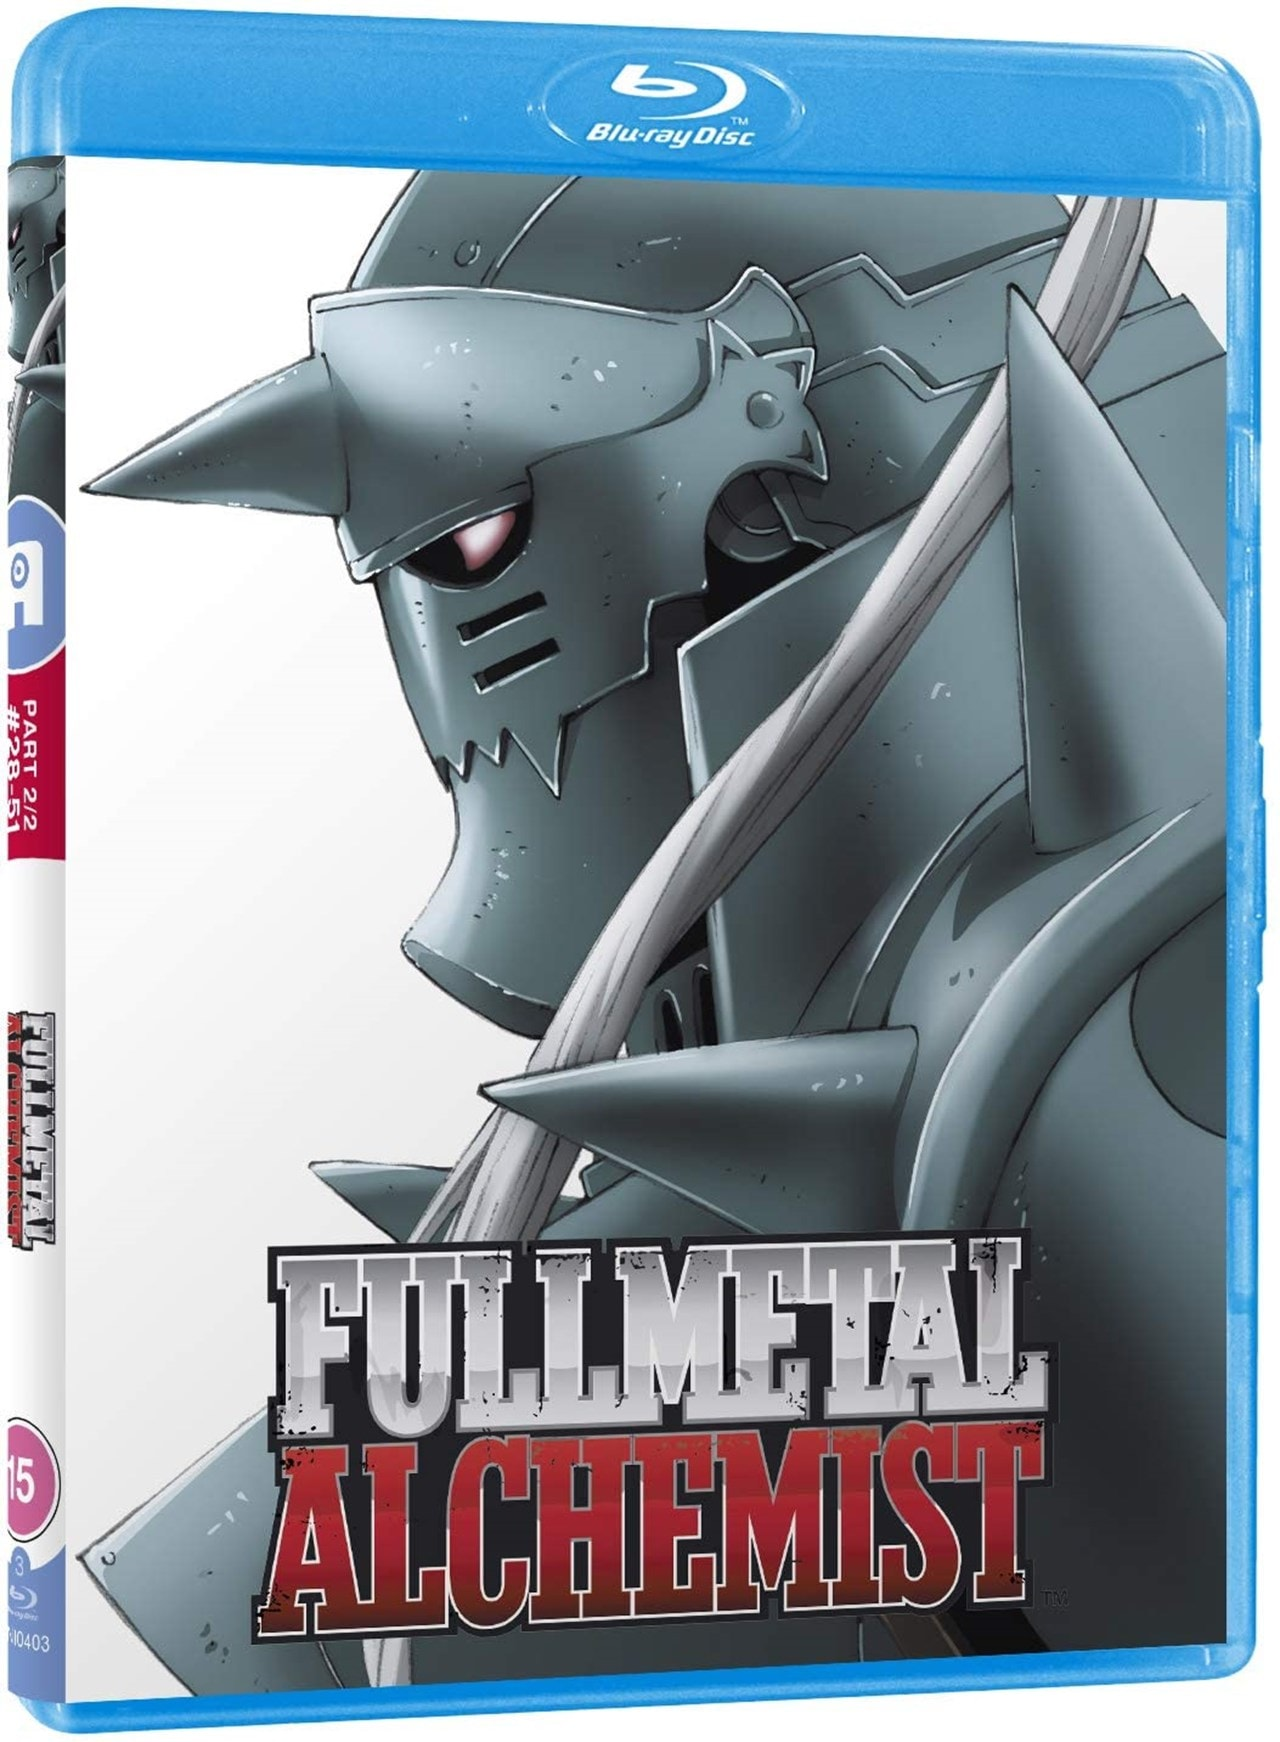 Fullmetal Alchemist: Part 2 Limited Collector's Edition - 2